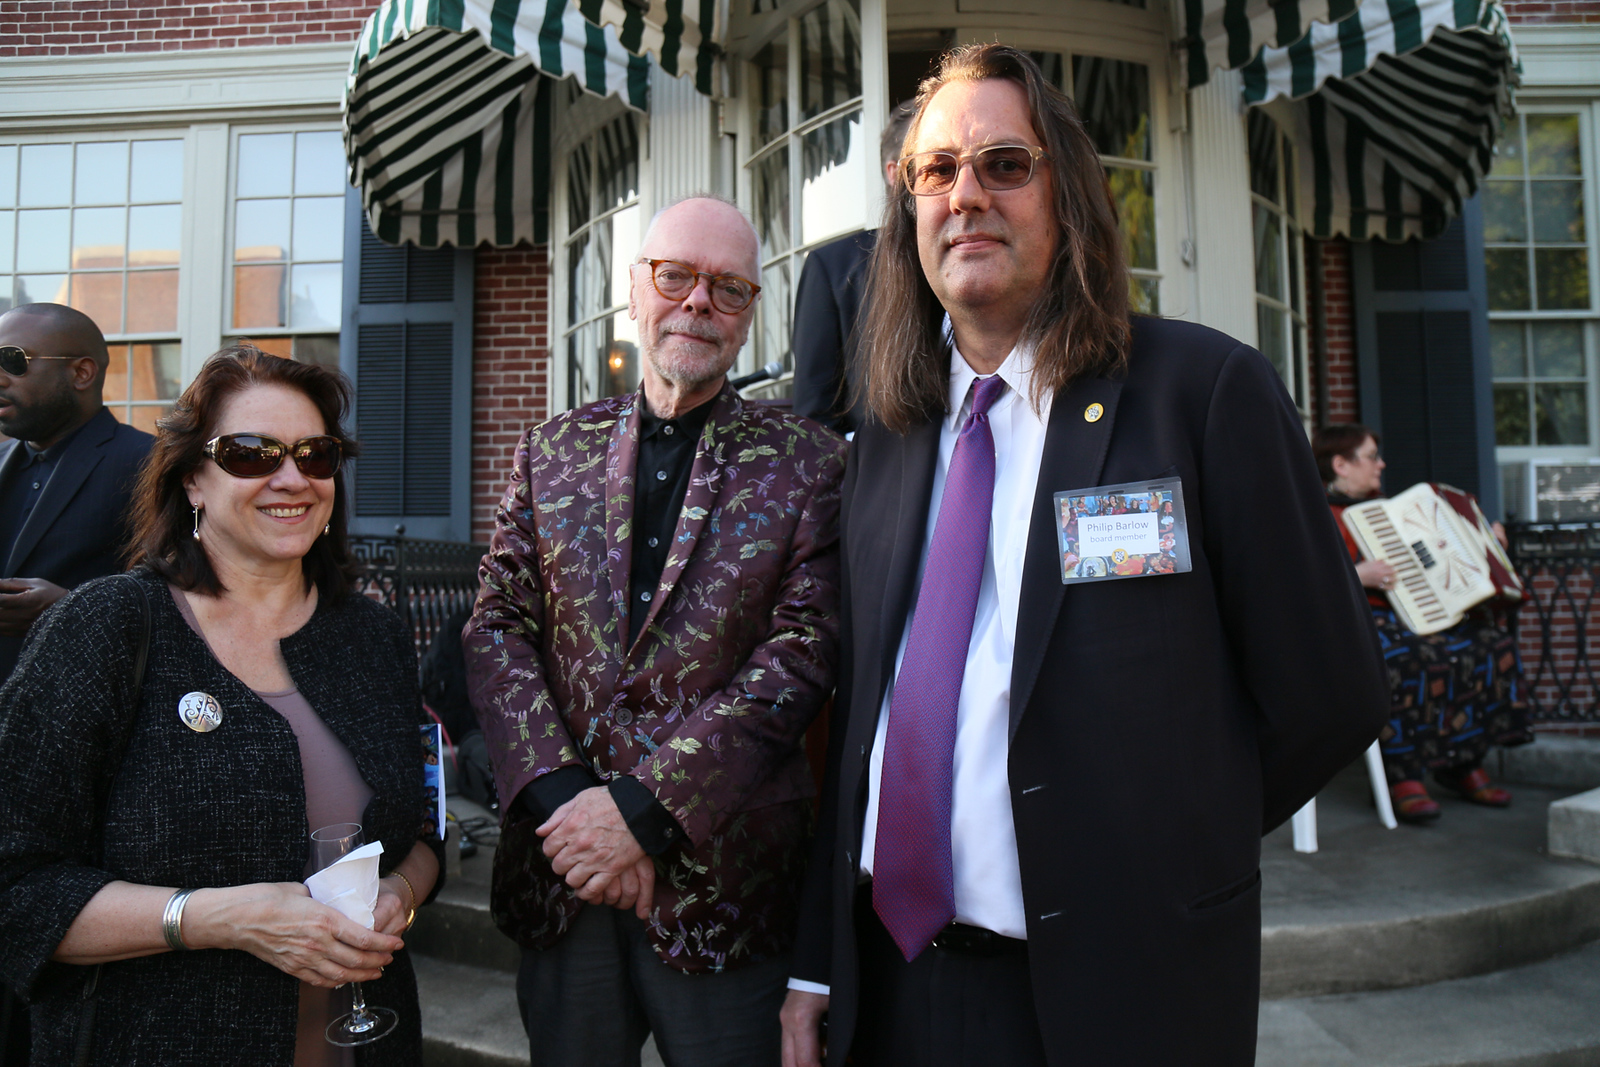 Laura Roulet, Frank Day, Phillip Barlou, DC Art Center, Cuisine des Artistes, the Woodrow Wilson House, May 24, 2018